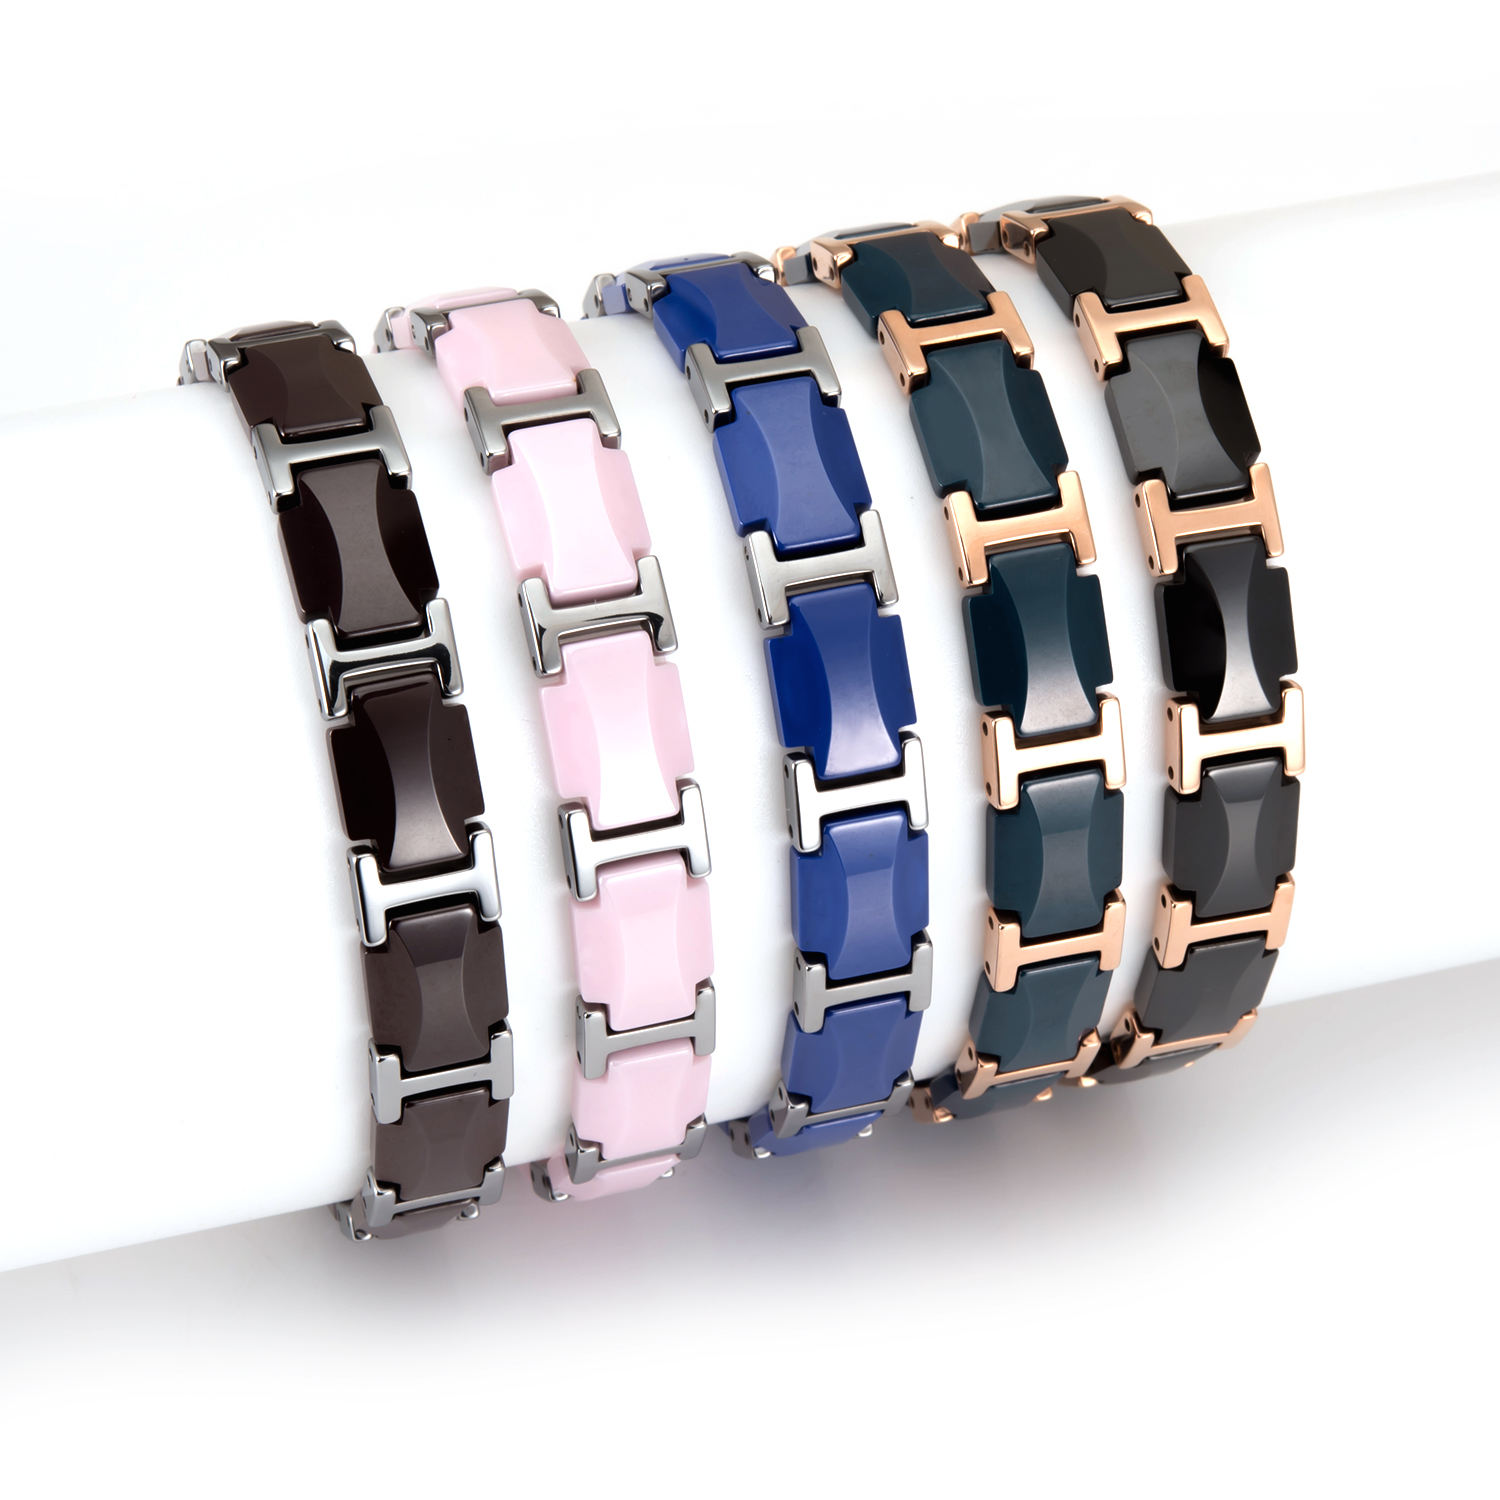 Wholesale High-tech Delicate Shinning Polished Stainless Black White Blue Bio Magnetic Wide Ceramic Bracelet With Watch Clasp